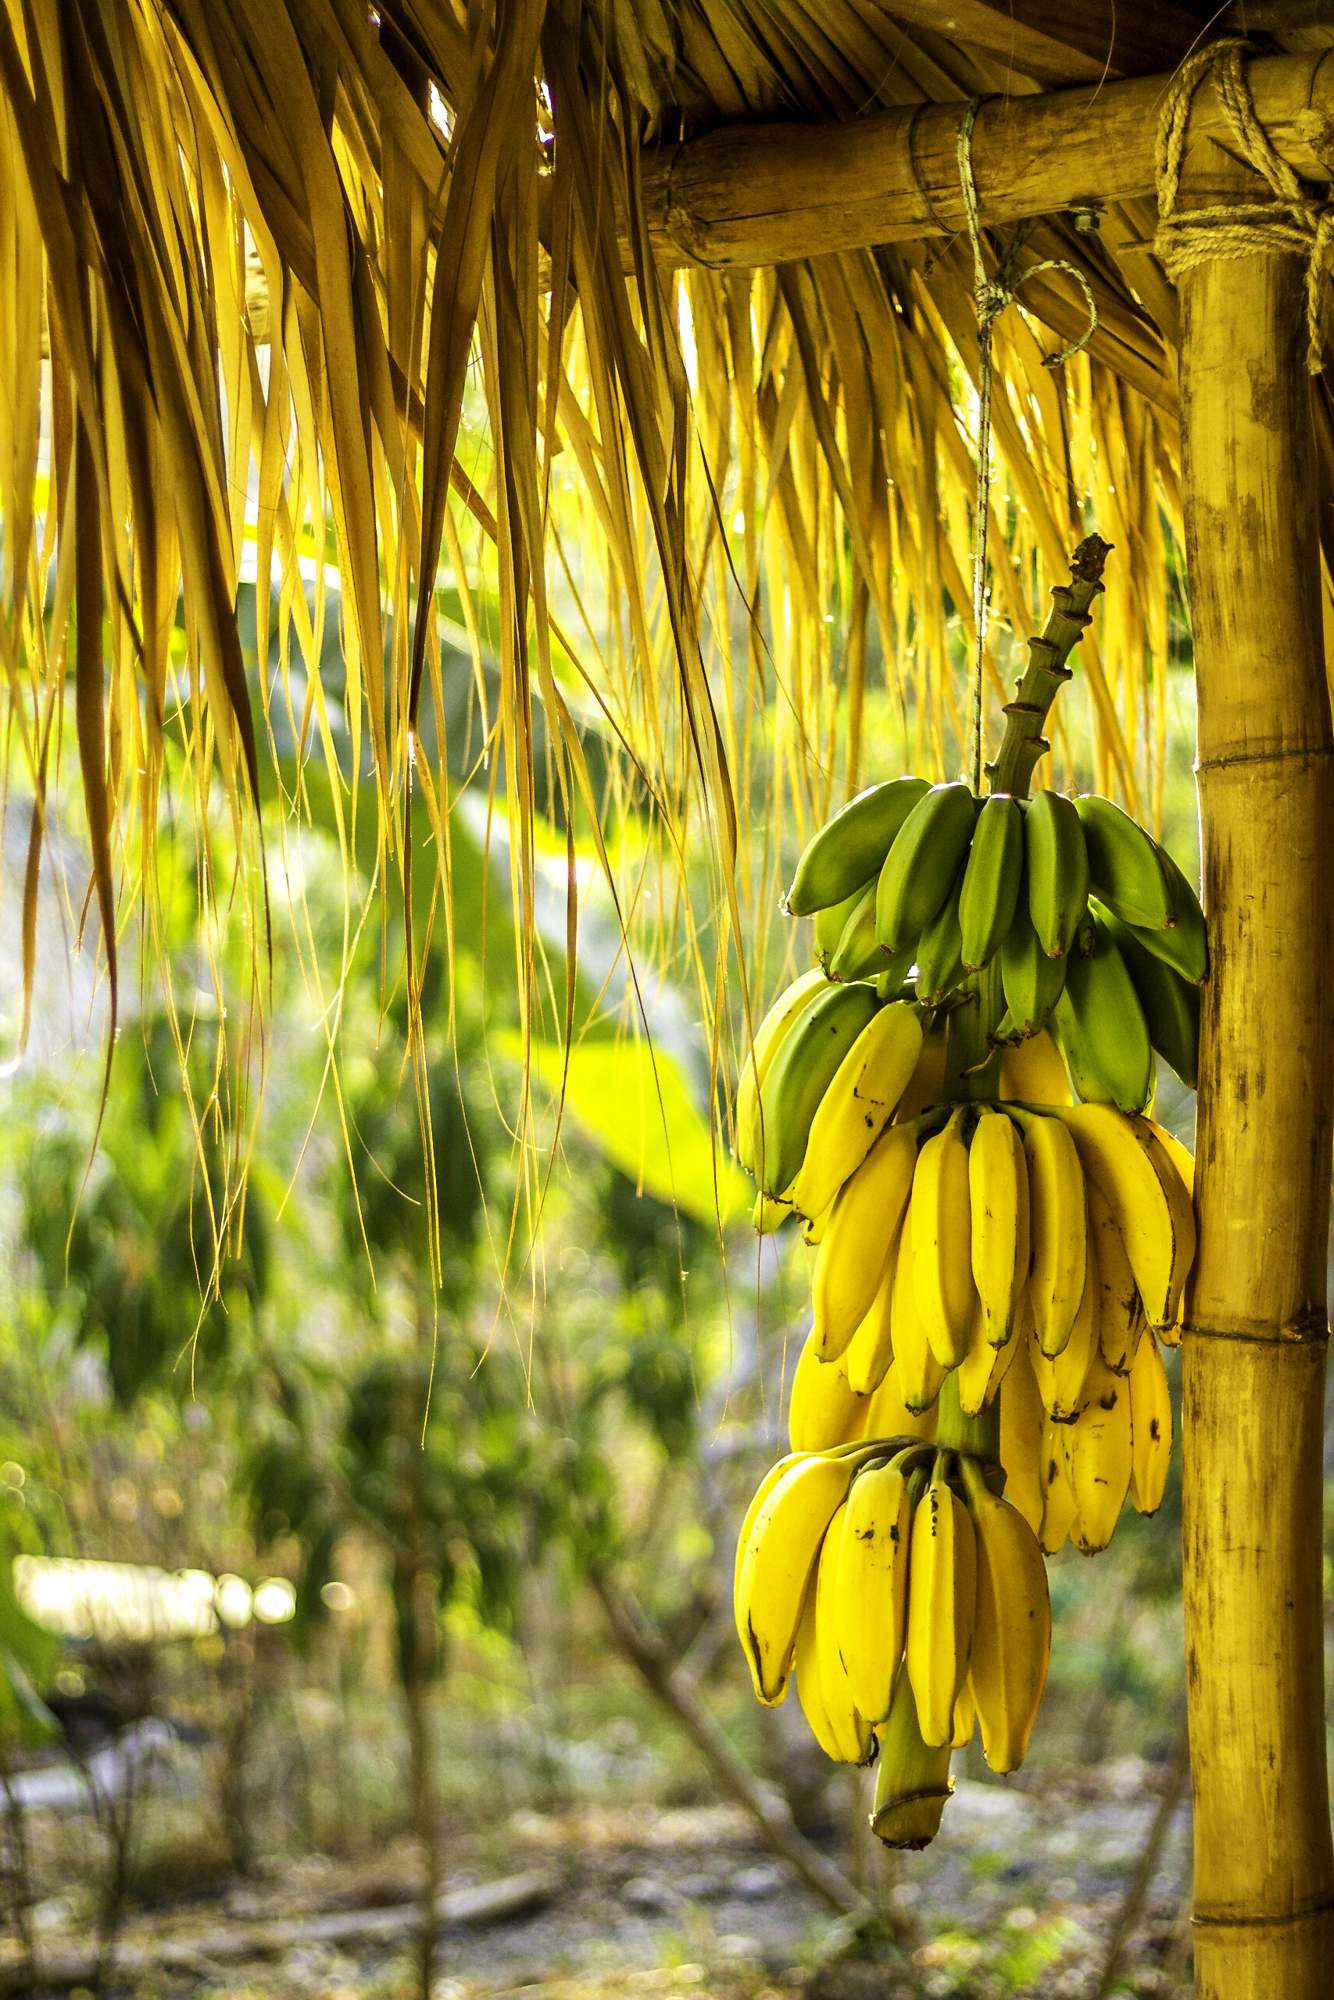 Bananas ready for a smoothie.